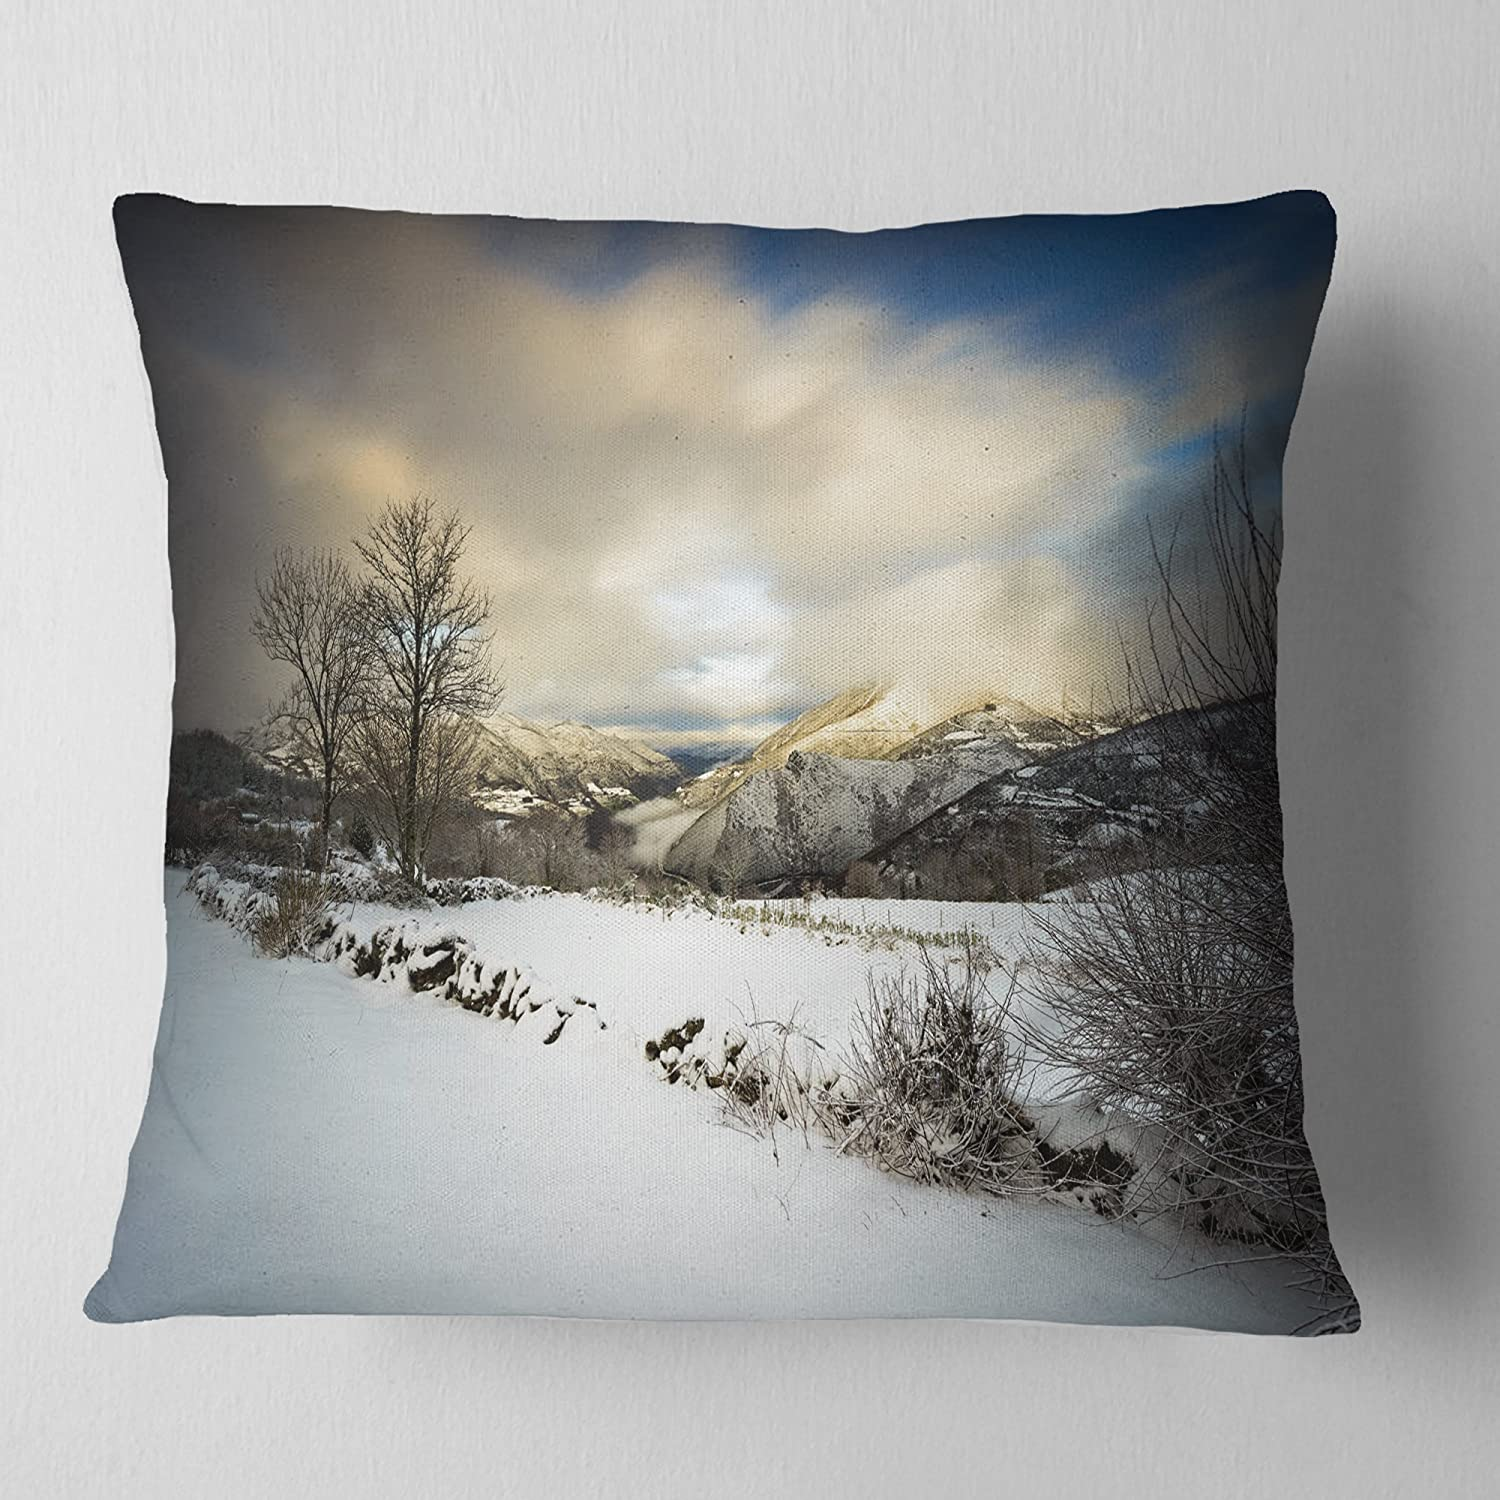 ArtVerse Katelyn Smith 26 x 26 Spun Polyester Double Sided Print with Concealed Zipper /& Insert Nevada Watercolor Pillow